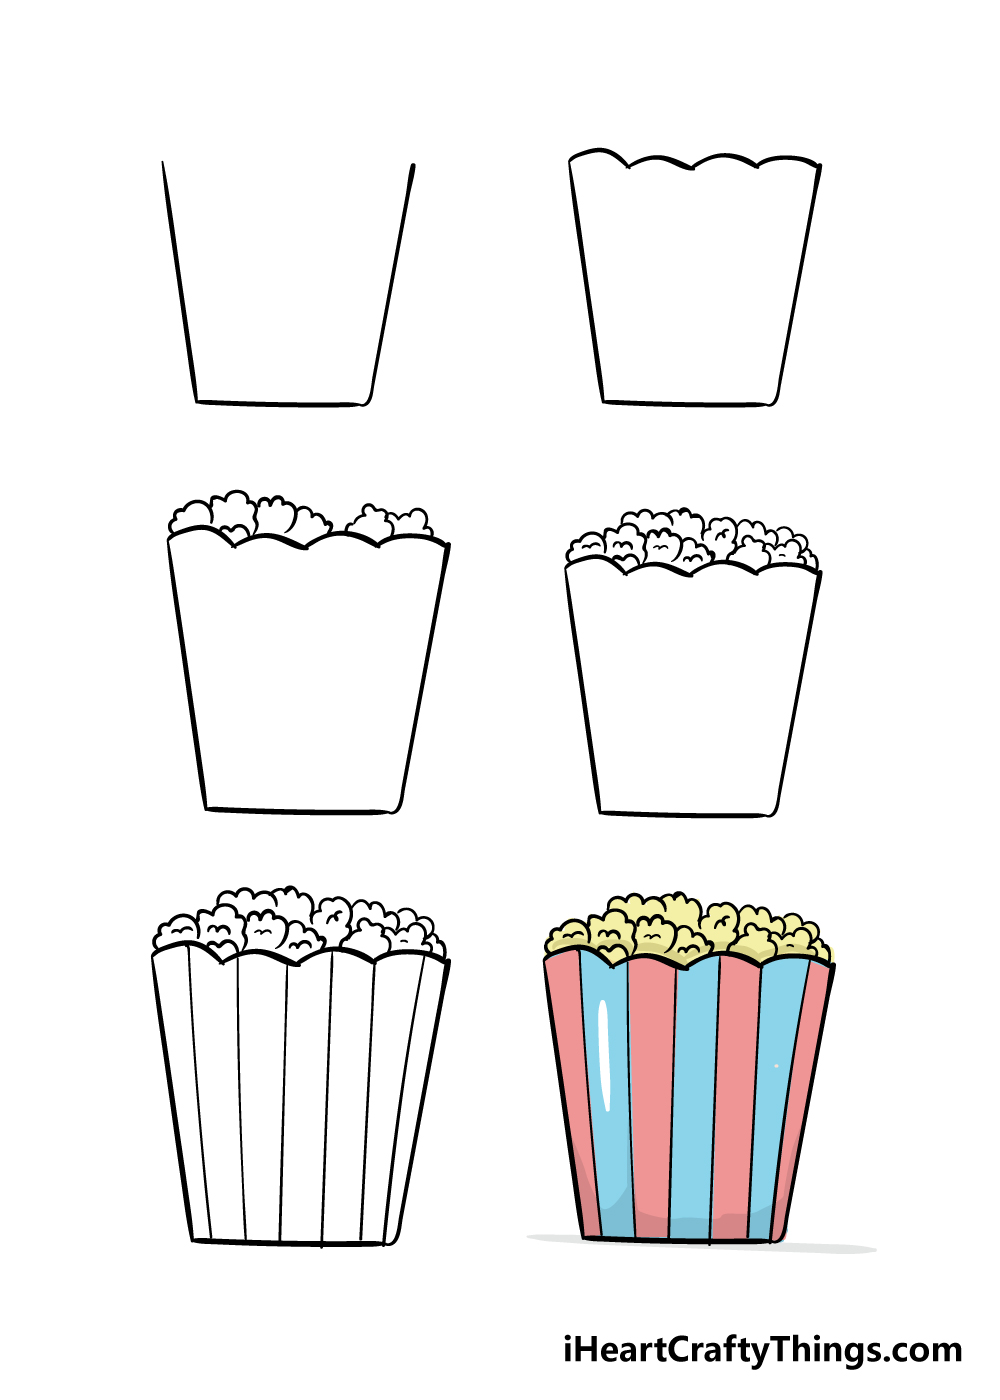 how to draw popcorn in 6 steps